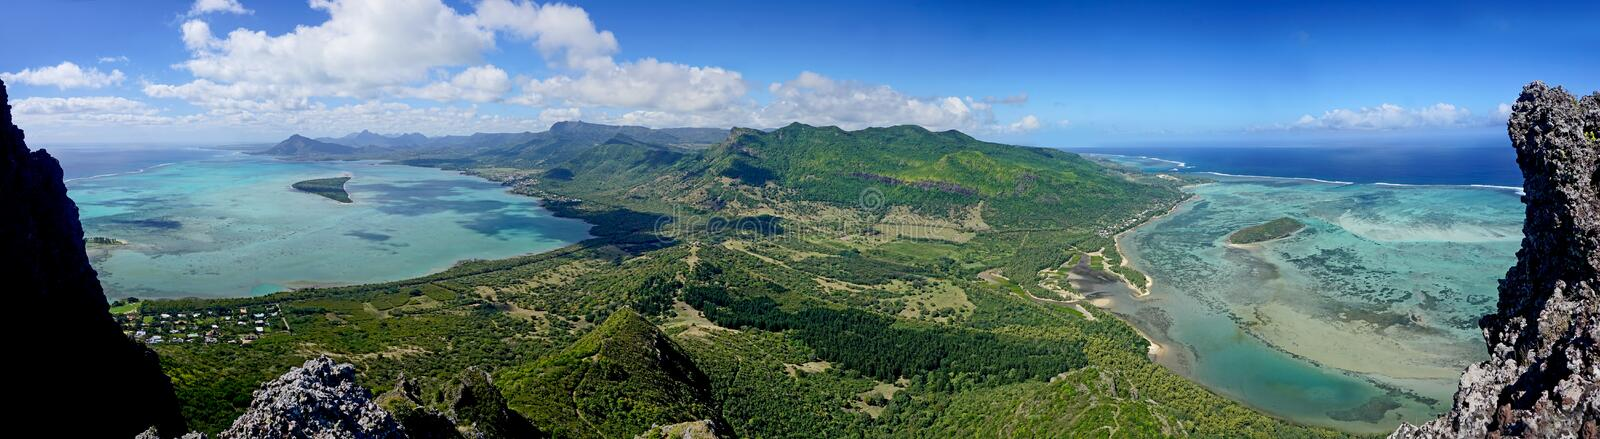 Panorama view from Le Morne Brabant mountain a UNESCO world heritage site Mauritius stock image